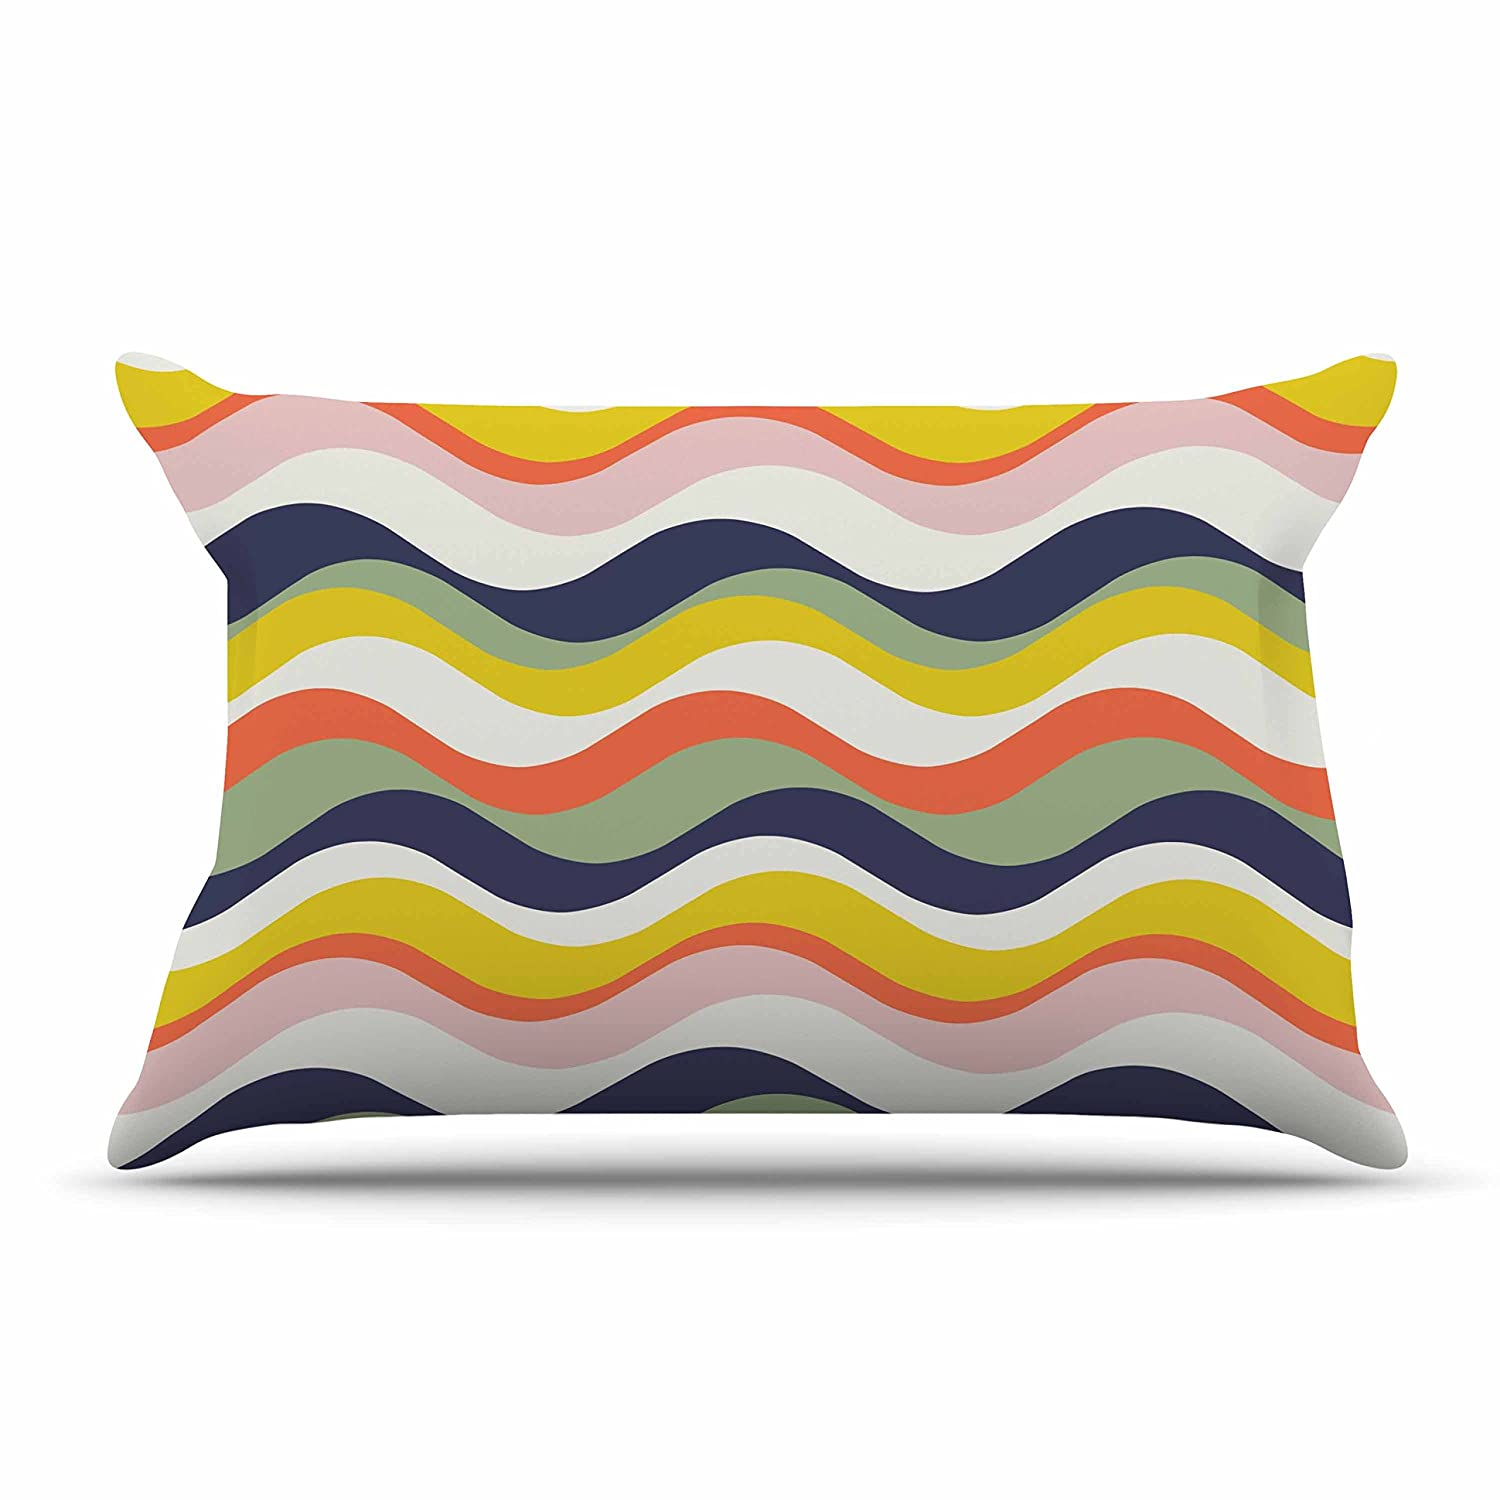 Kess InHouse Gukuuki Rainbow Stripes Multicolor Stripe Standard Pillow Case, 30 by 20-Inch, 30\' X 20\'